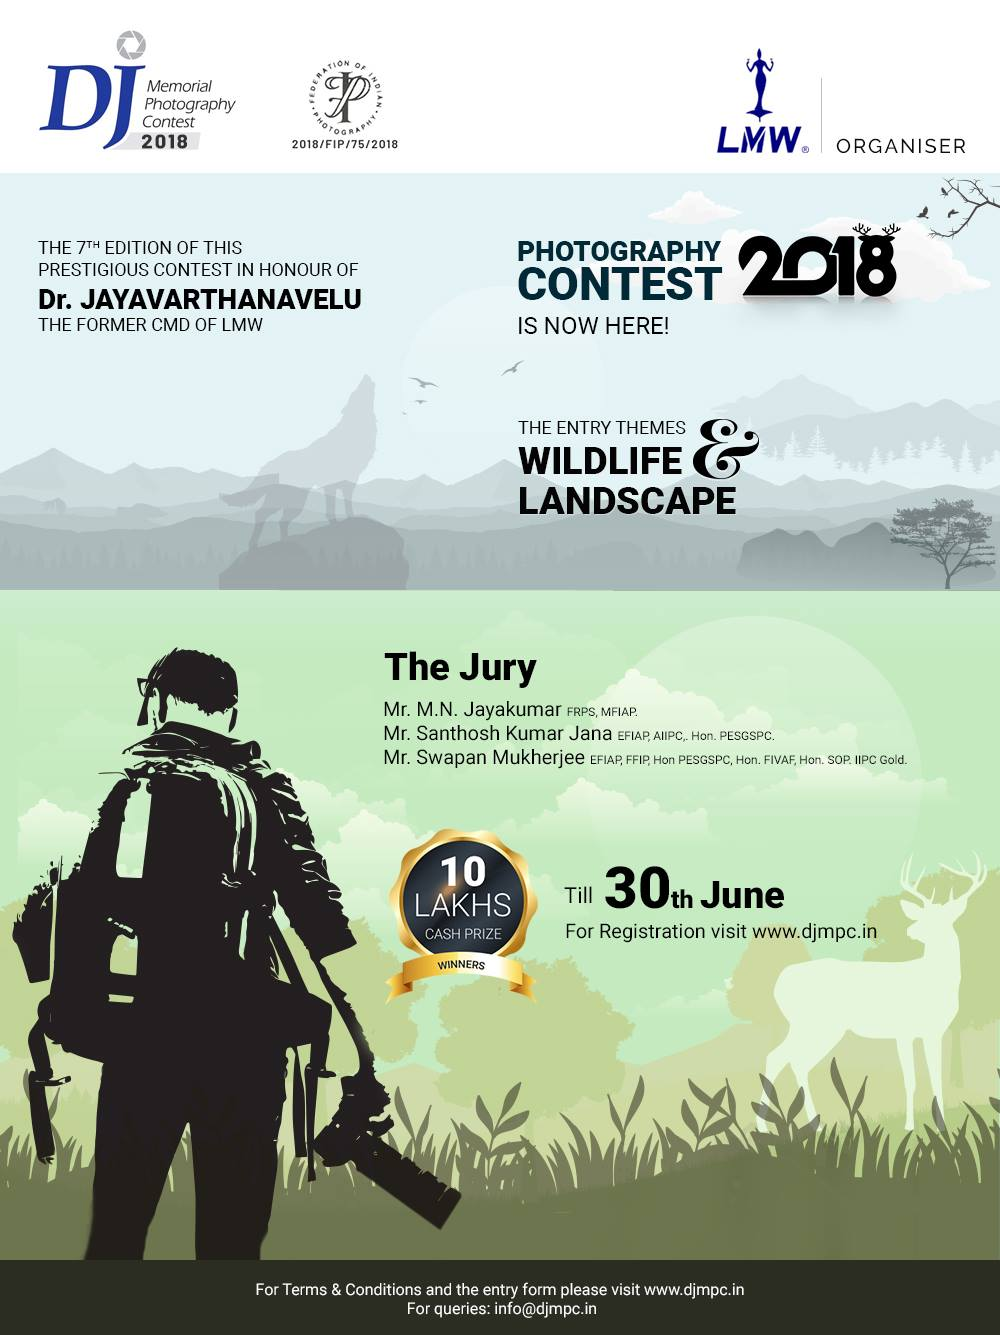 DJ Memorial Photographic Contest-2018 - logo